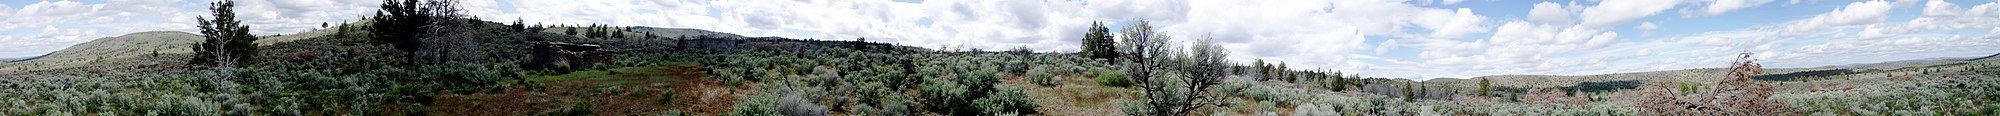 Panorama of the high desert in Central Oregon